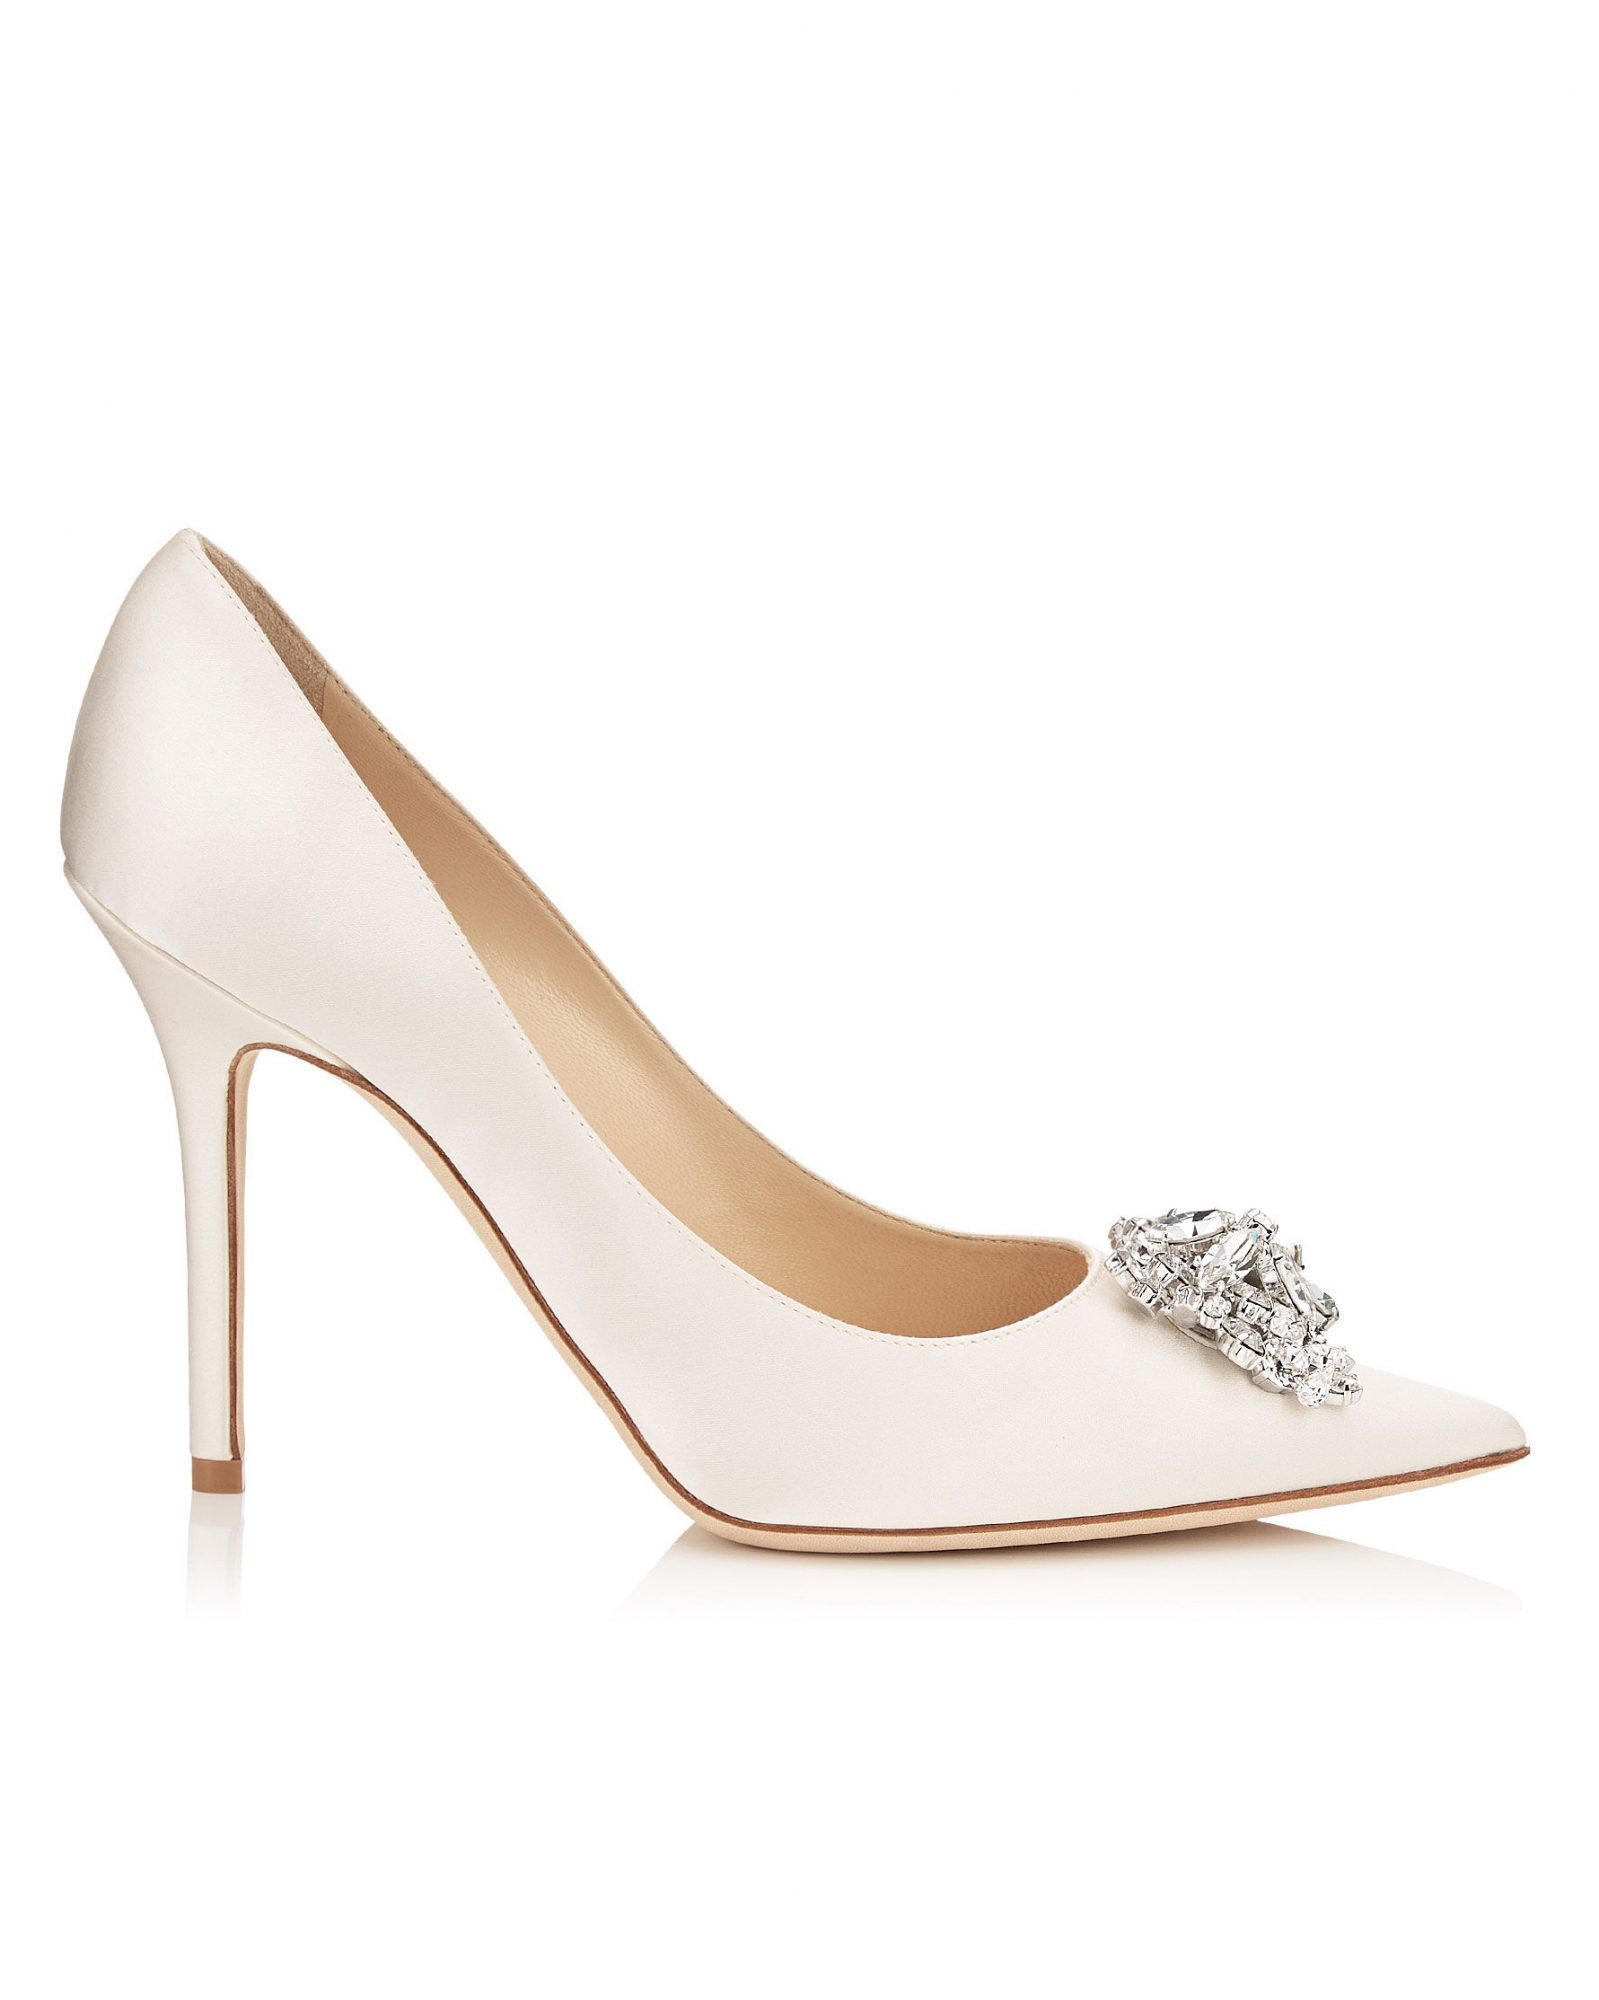 closed-toe-wedding-shoes-jimmy-choo-ivory-satin-1216-1.jpg